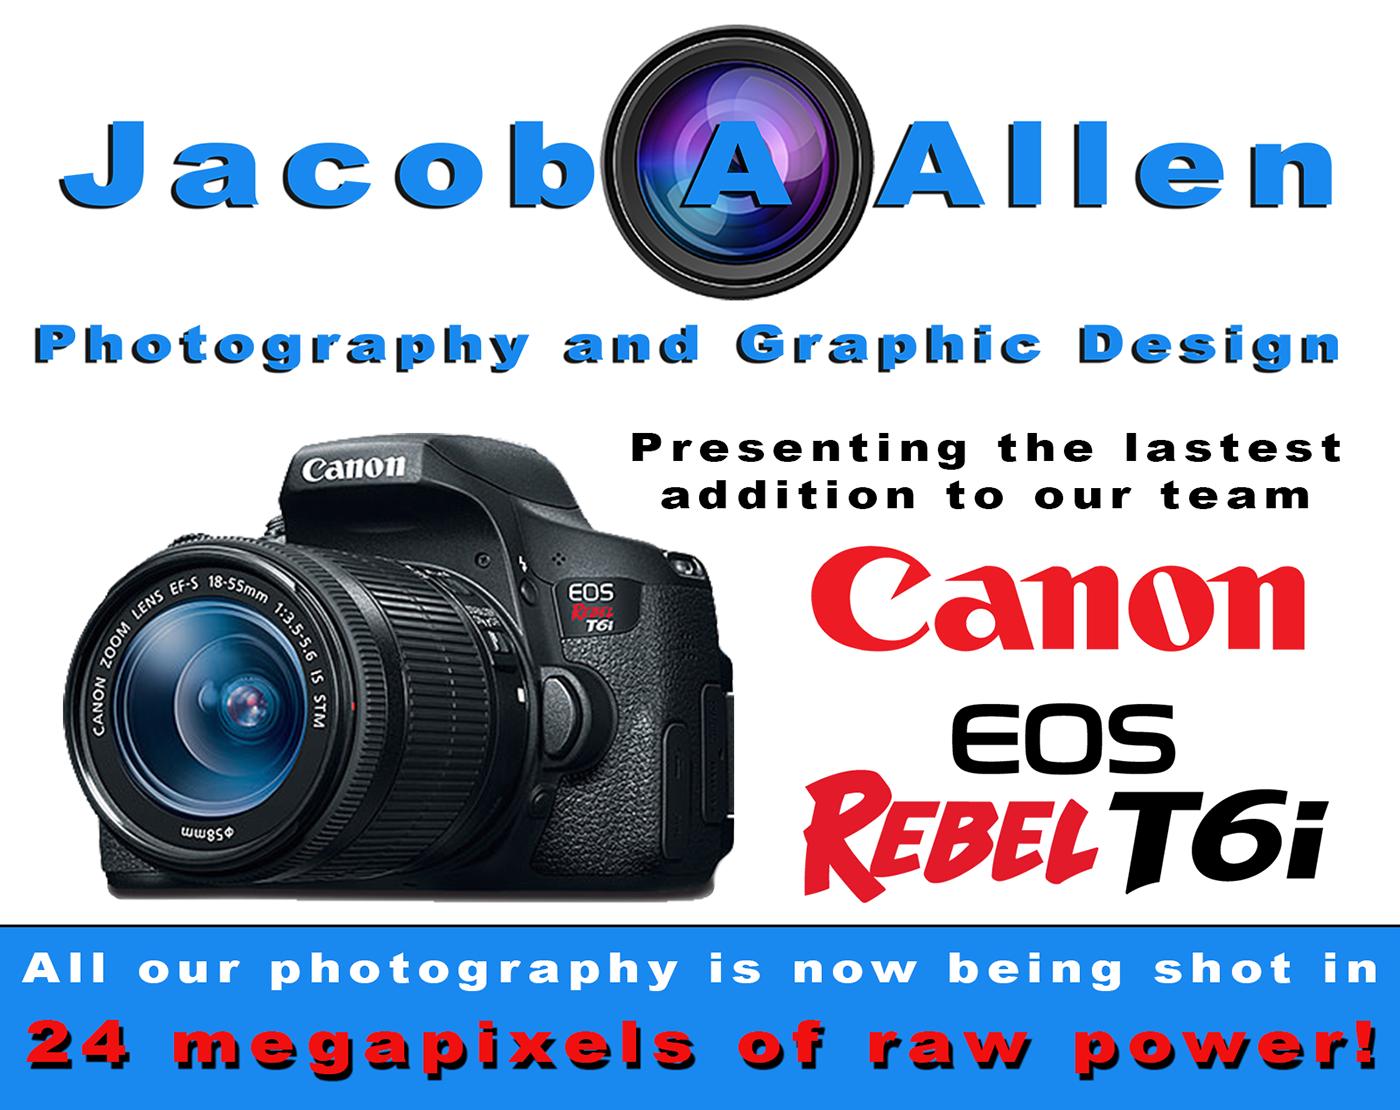 Promotion of My New Canon Rebel T6i, 2016 on Behance